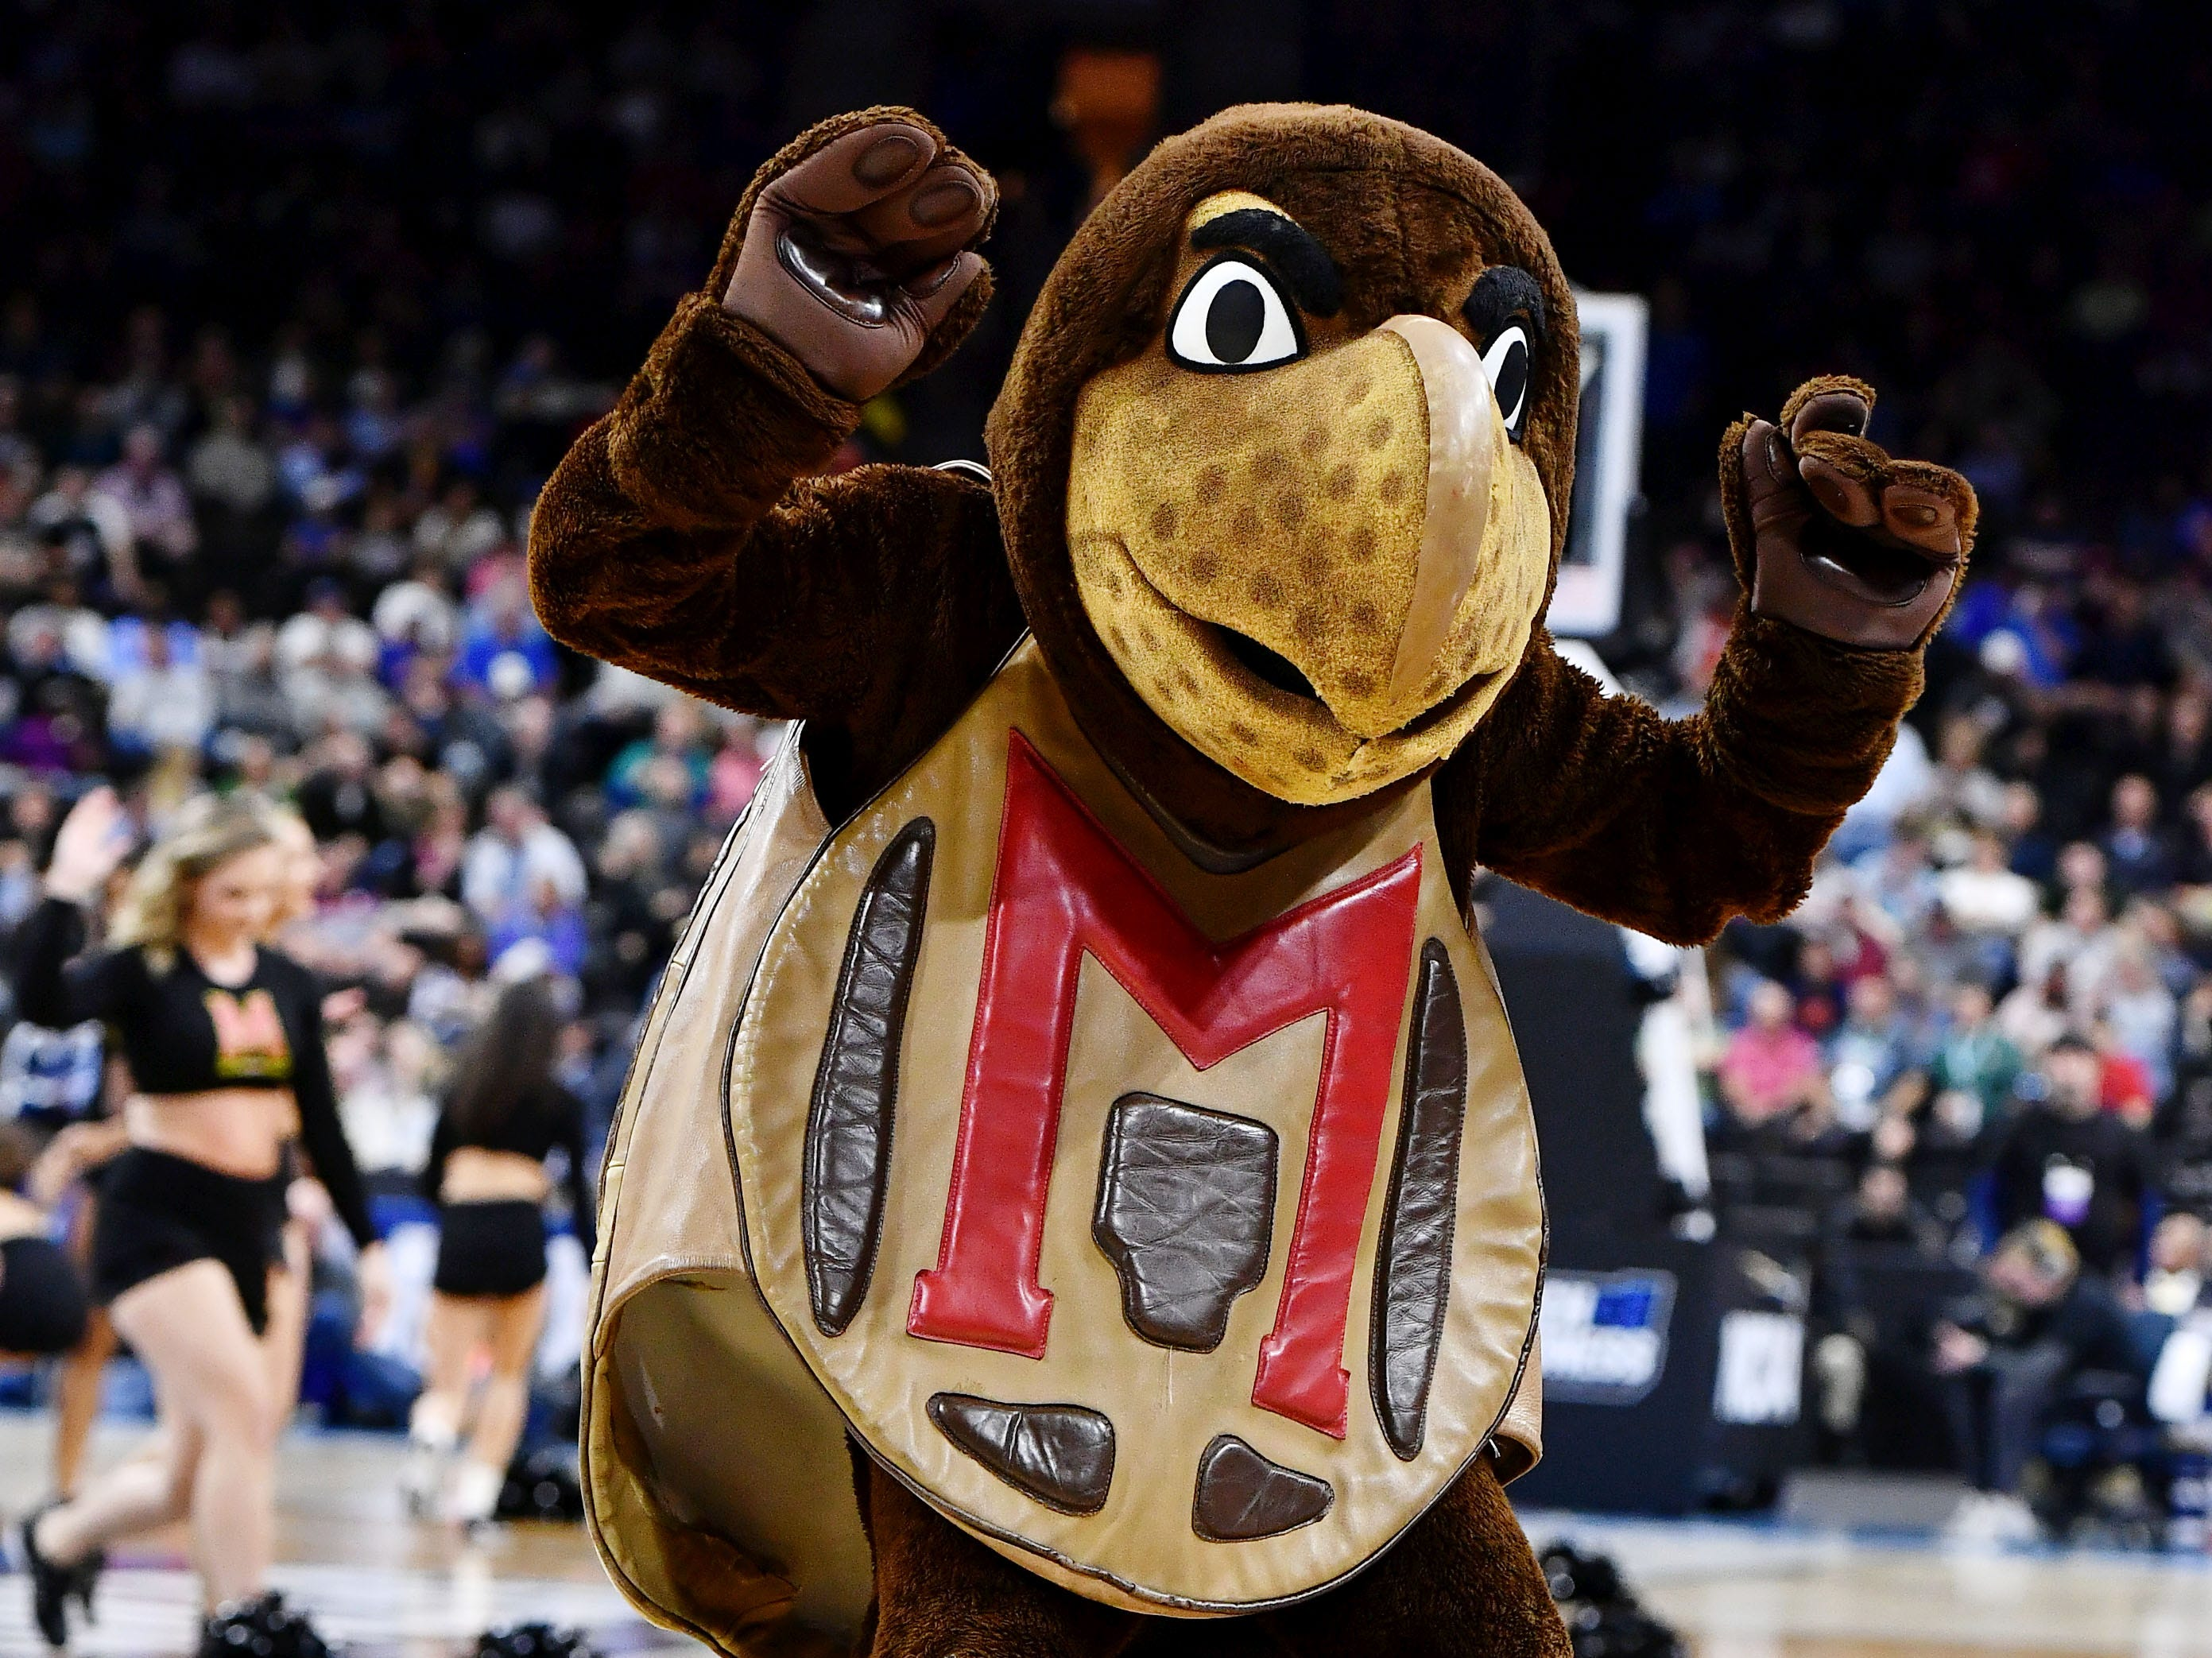 Mar 23, 2019; Jacksonville, FL, USA; The Maryland Terrapins mascot dances on the court during a timeout during the first half of their game against the LSU Tigers in the second round of the 2019 NCAA Tournament at Jacksonville Veterans Memorial Arena. Mandatory Credit: John David Mercer-USA TODAY Sports